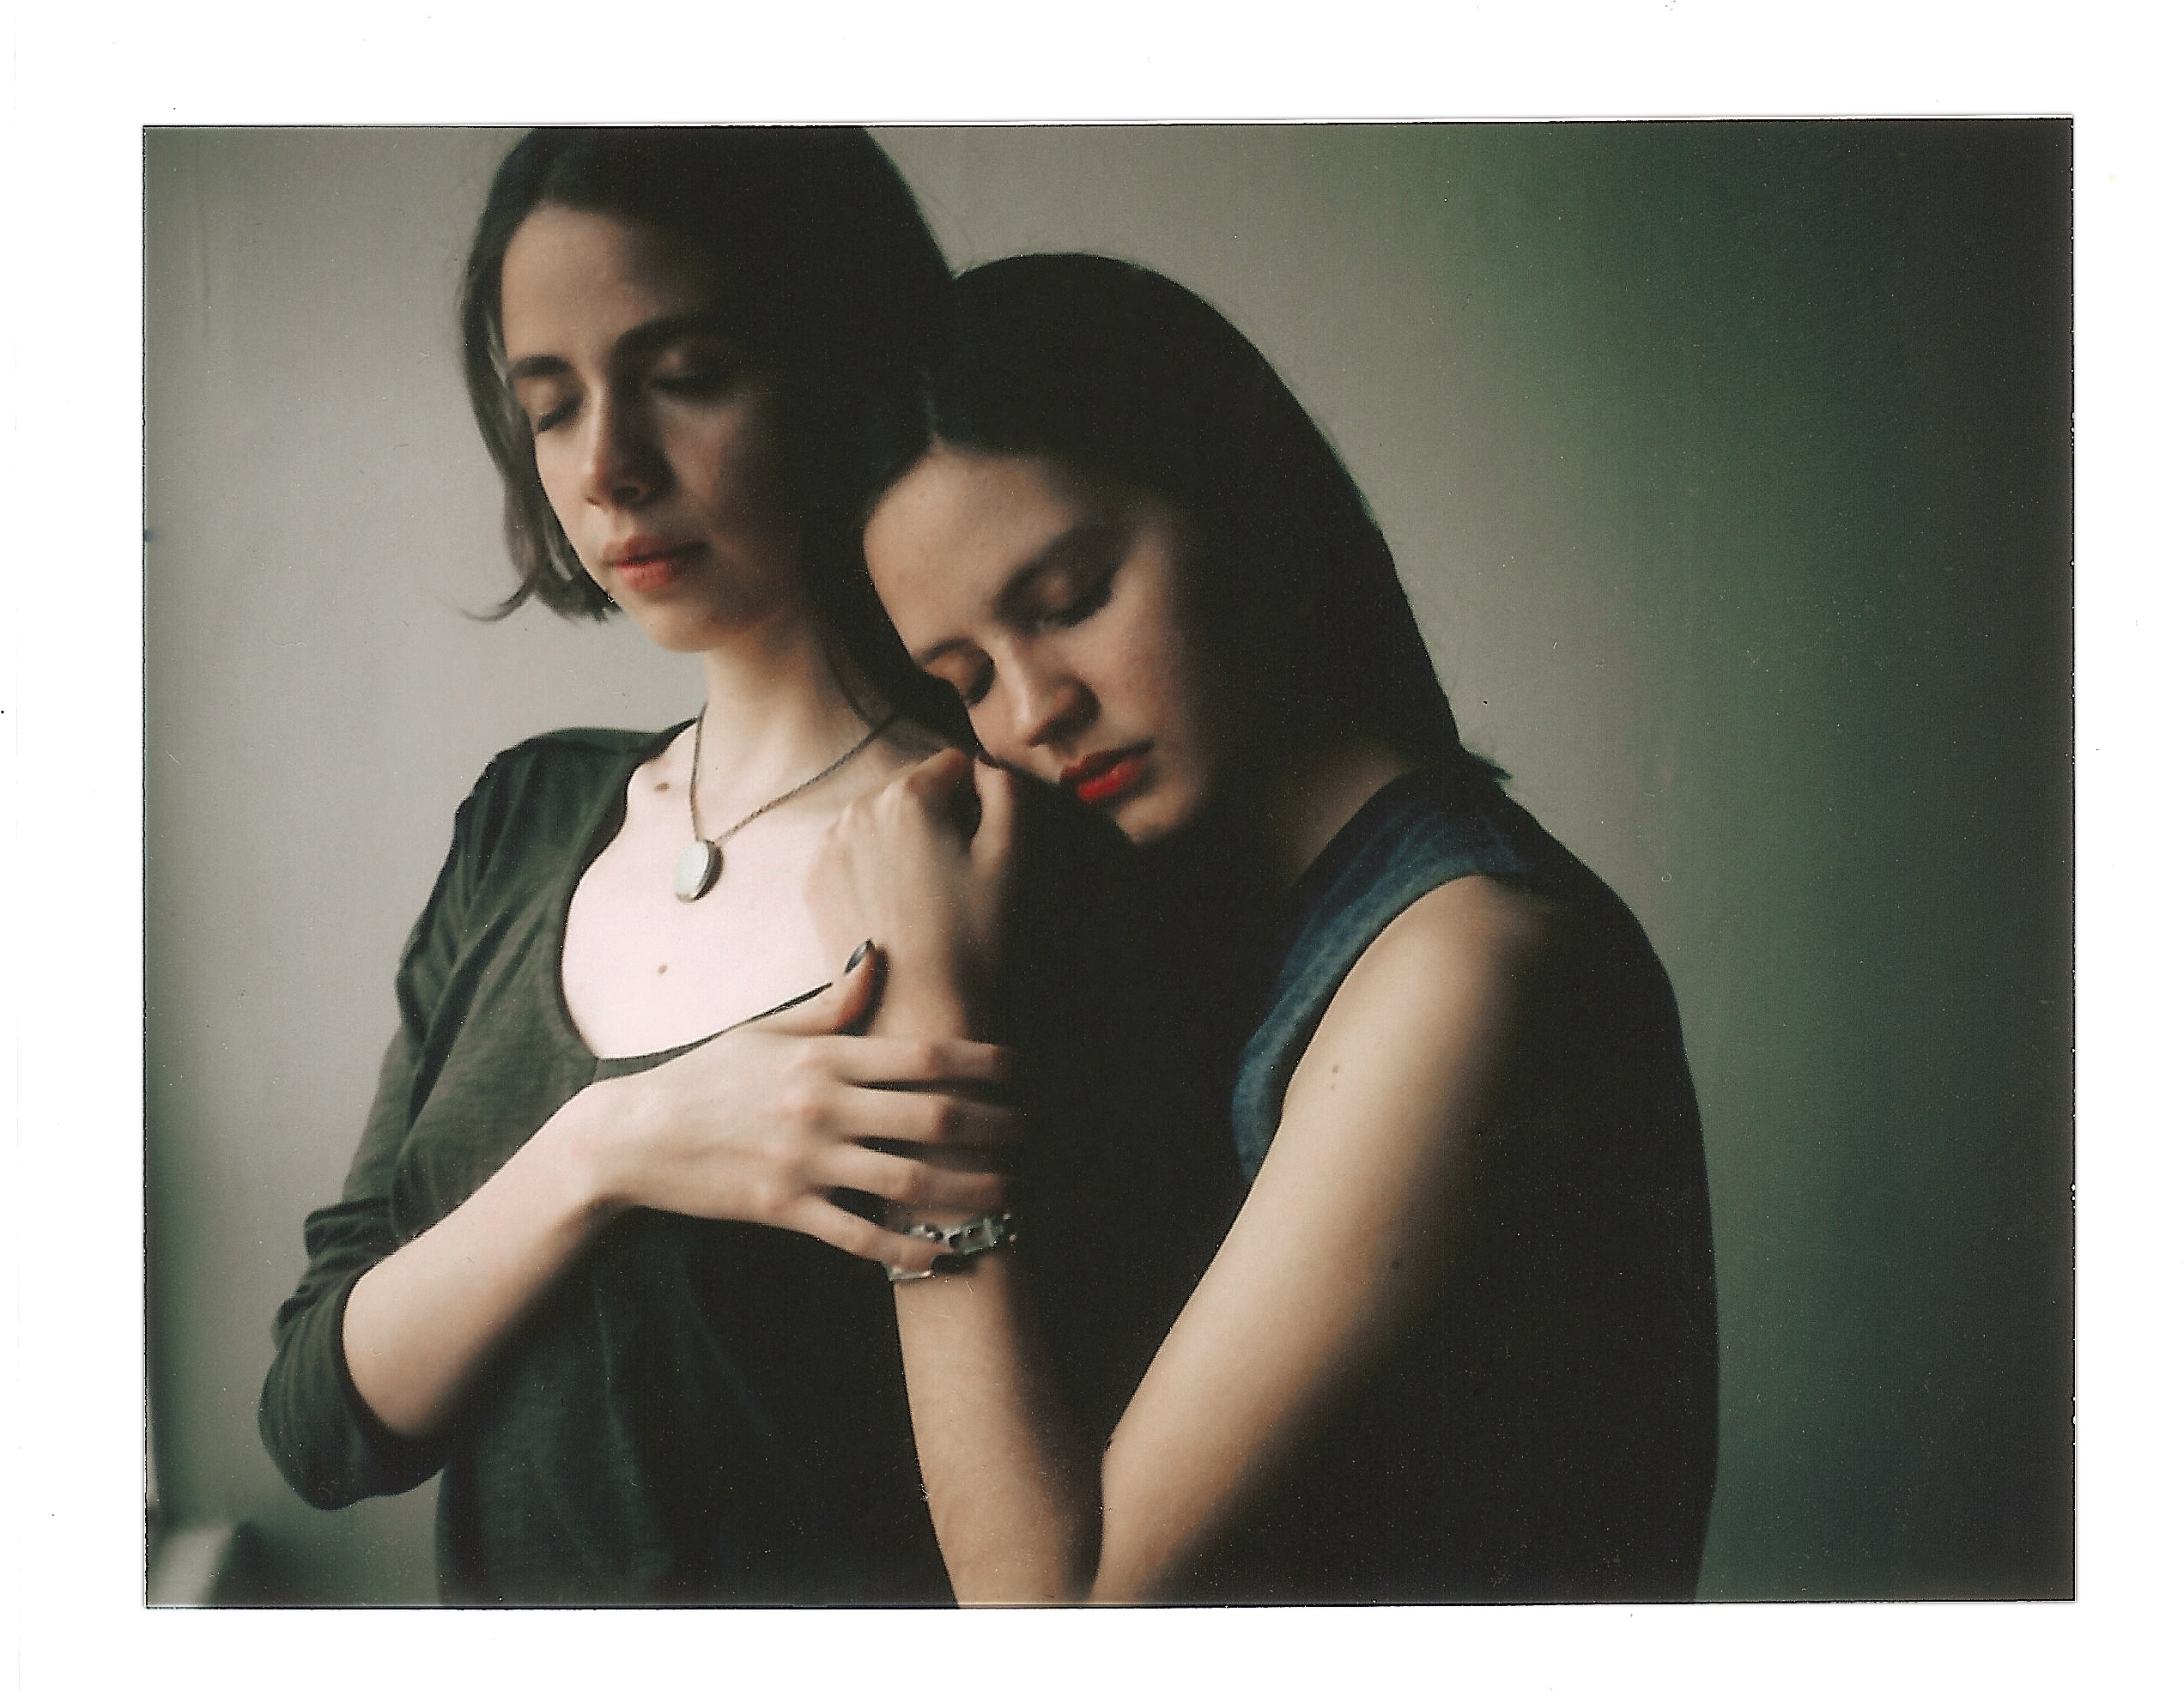 anette and mariana polaroid